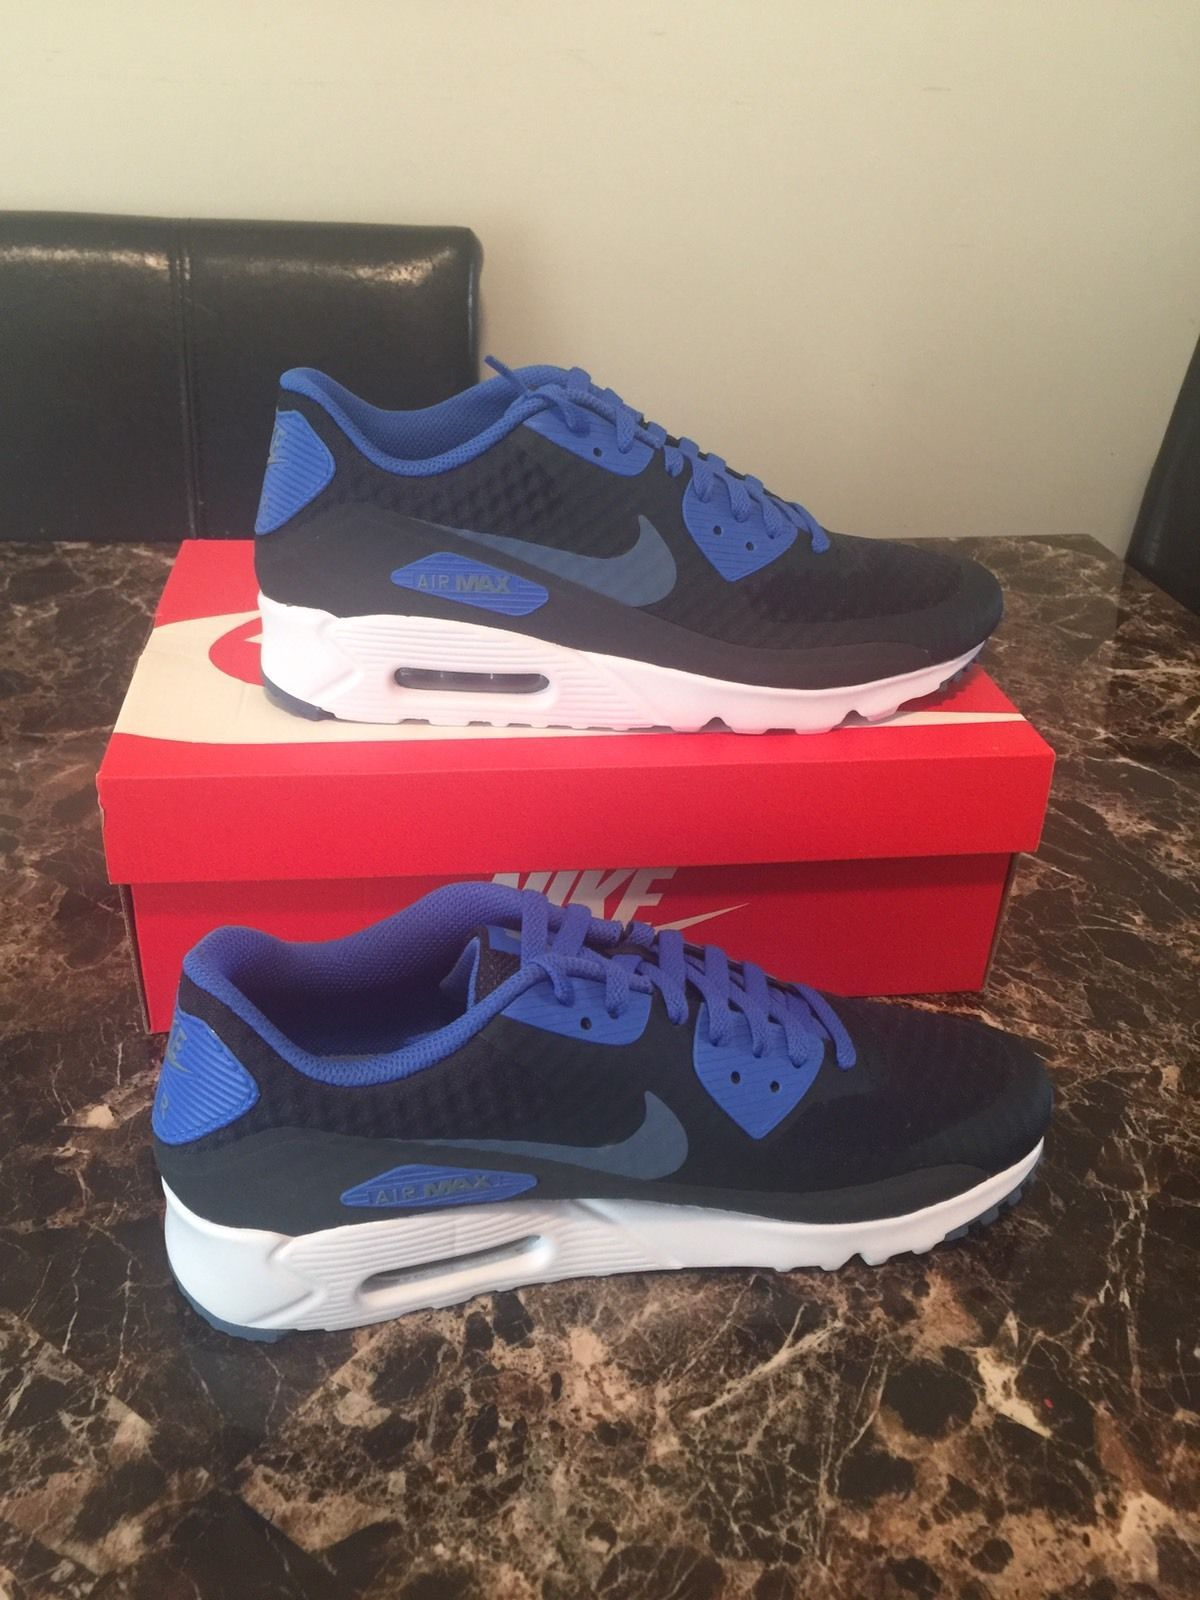 NIKE AIR MAX 90 ULTRA ESSENTIAL SHOES BLUE 819474 405 MENS SIZE 10